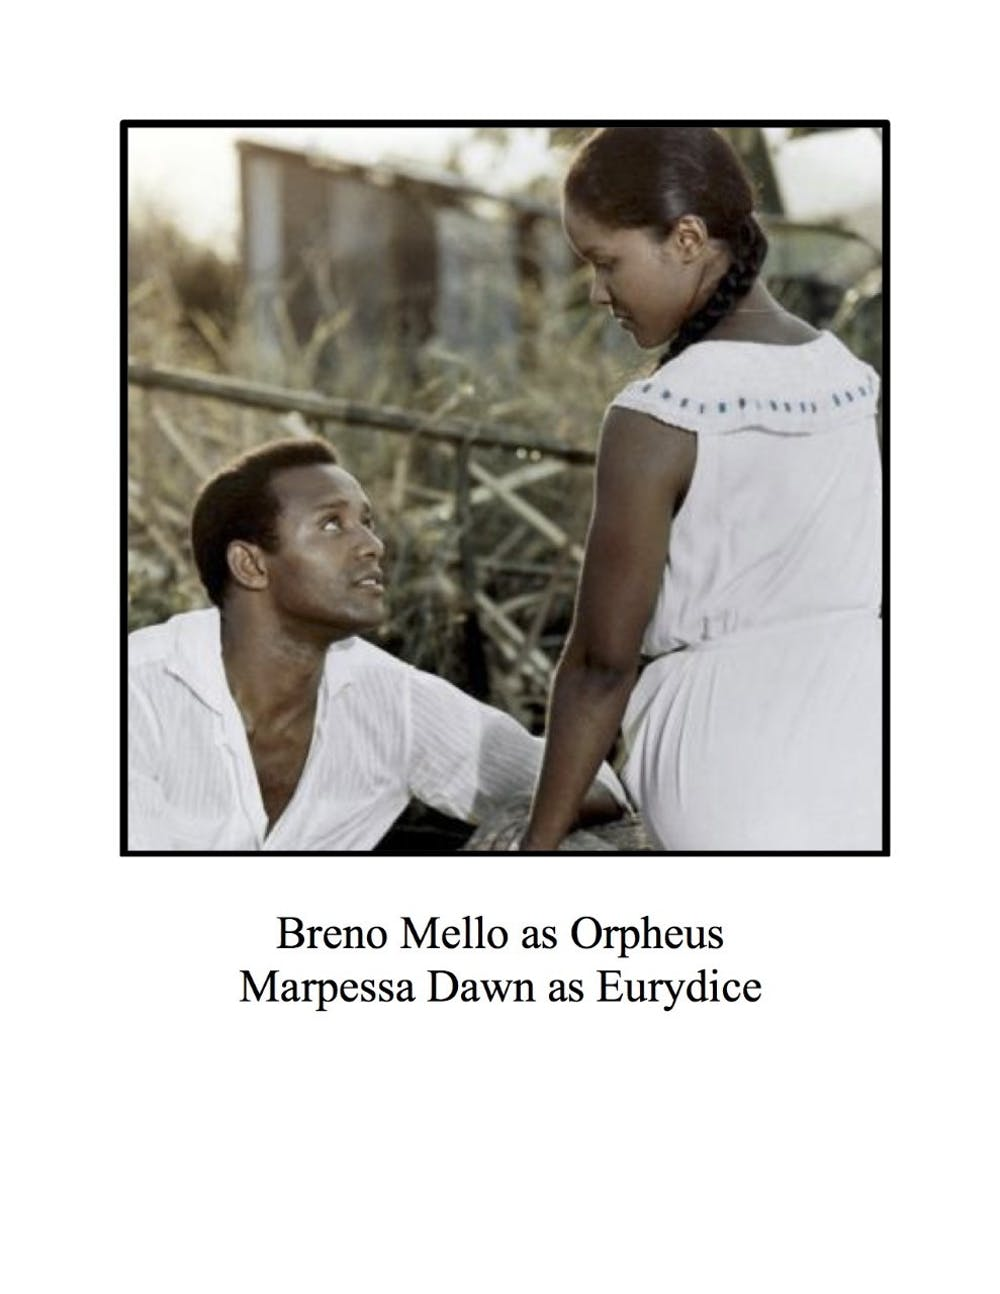 Showing of 'Black Orpheus' hopes to spark discussion about the ethics of filmmaking